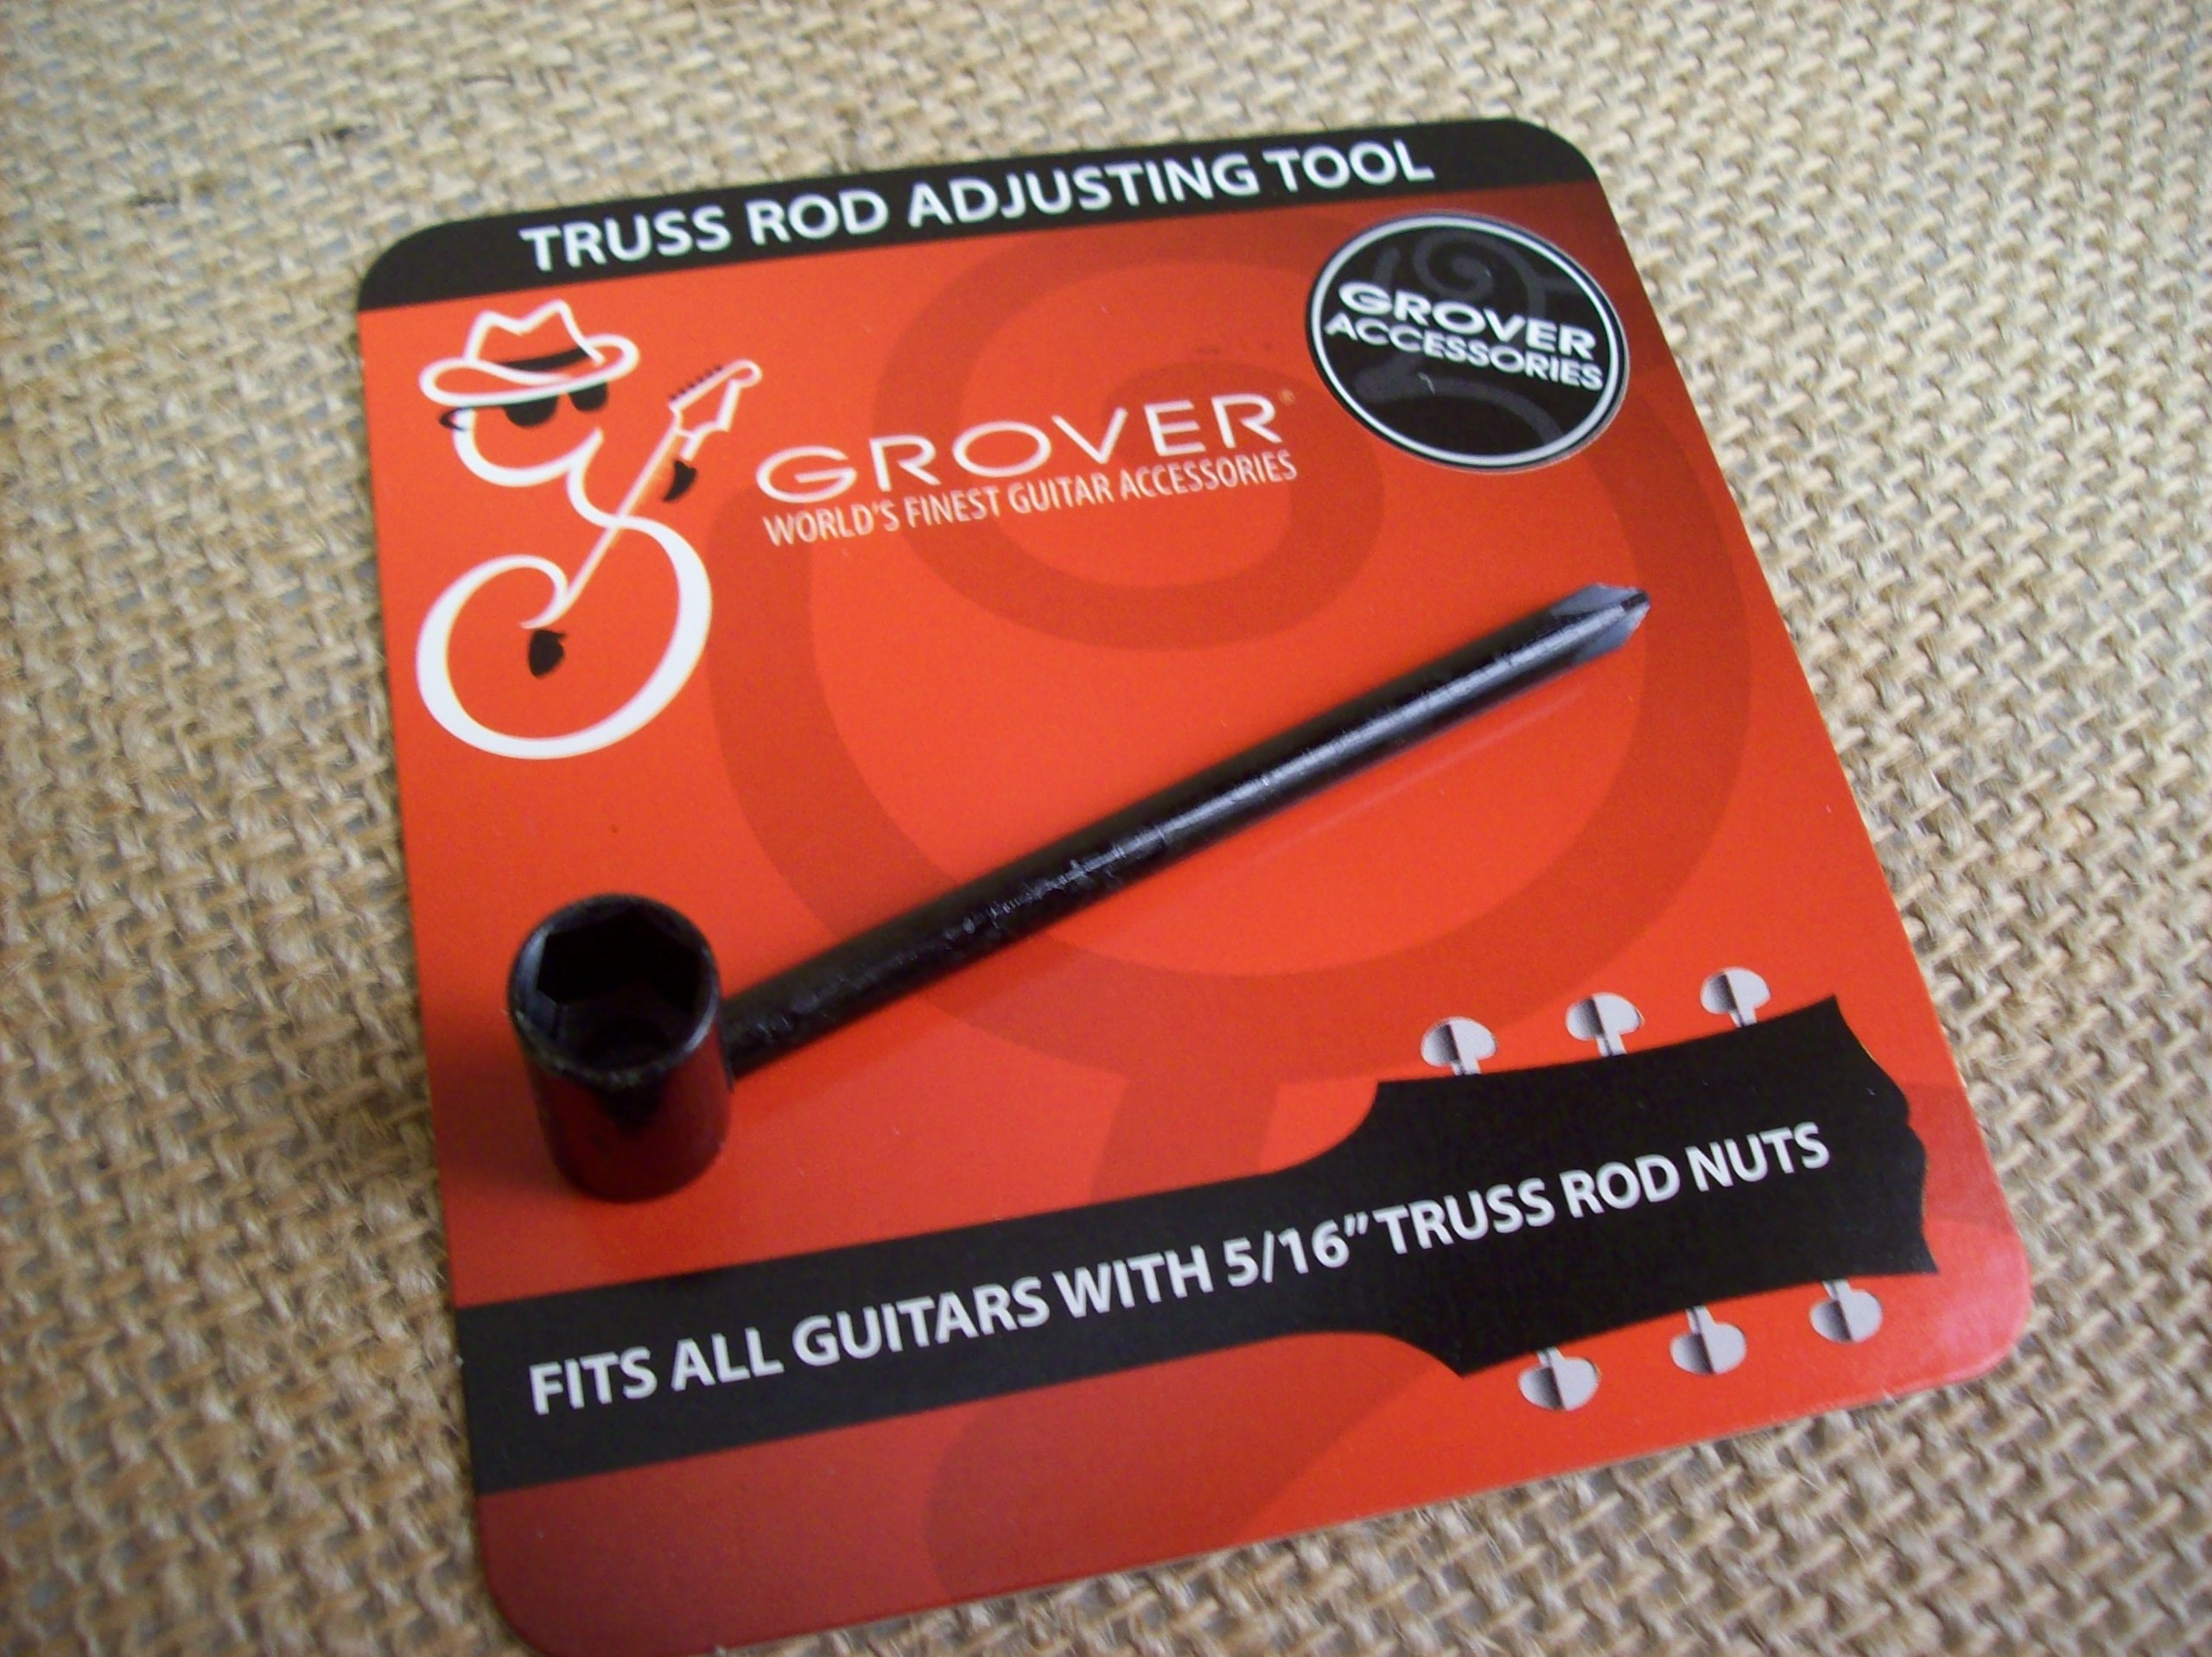 Grover 5/16'' Truss Rod Wrench